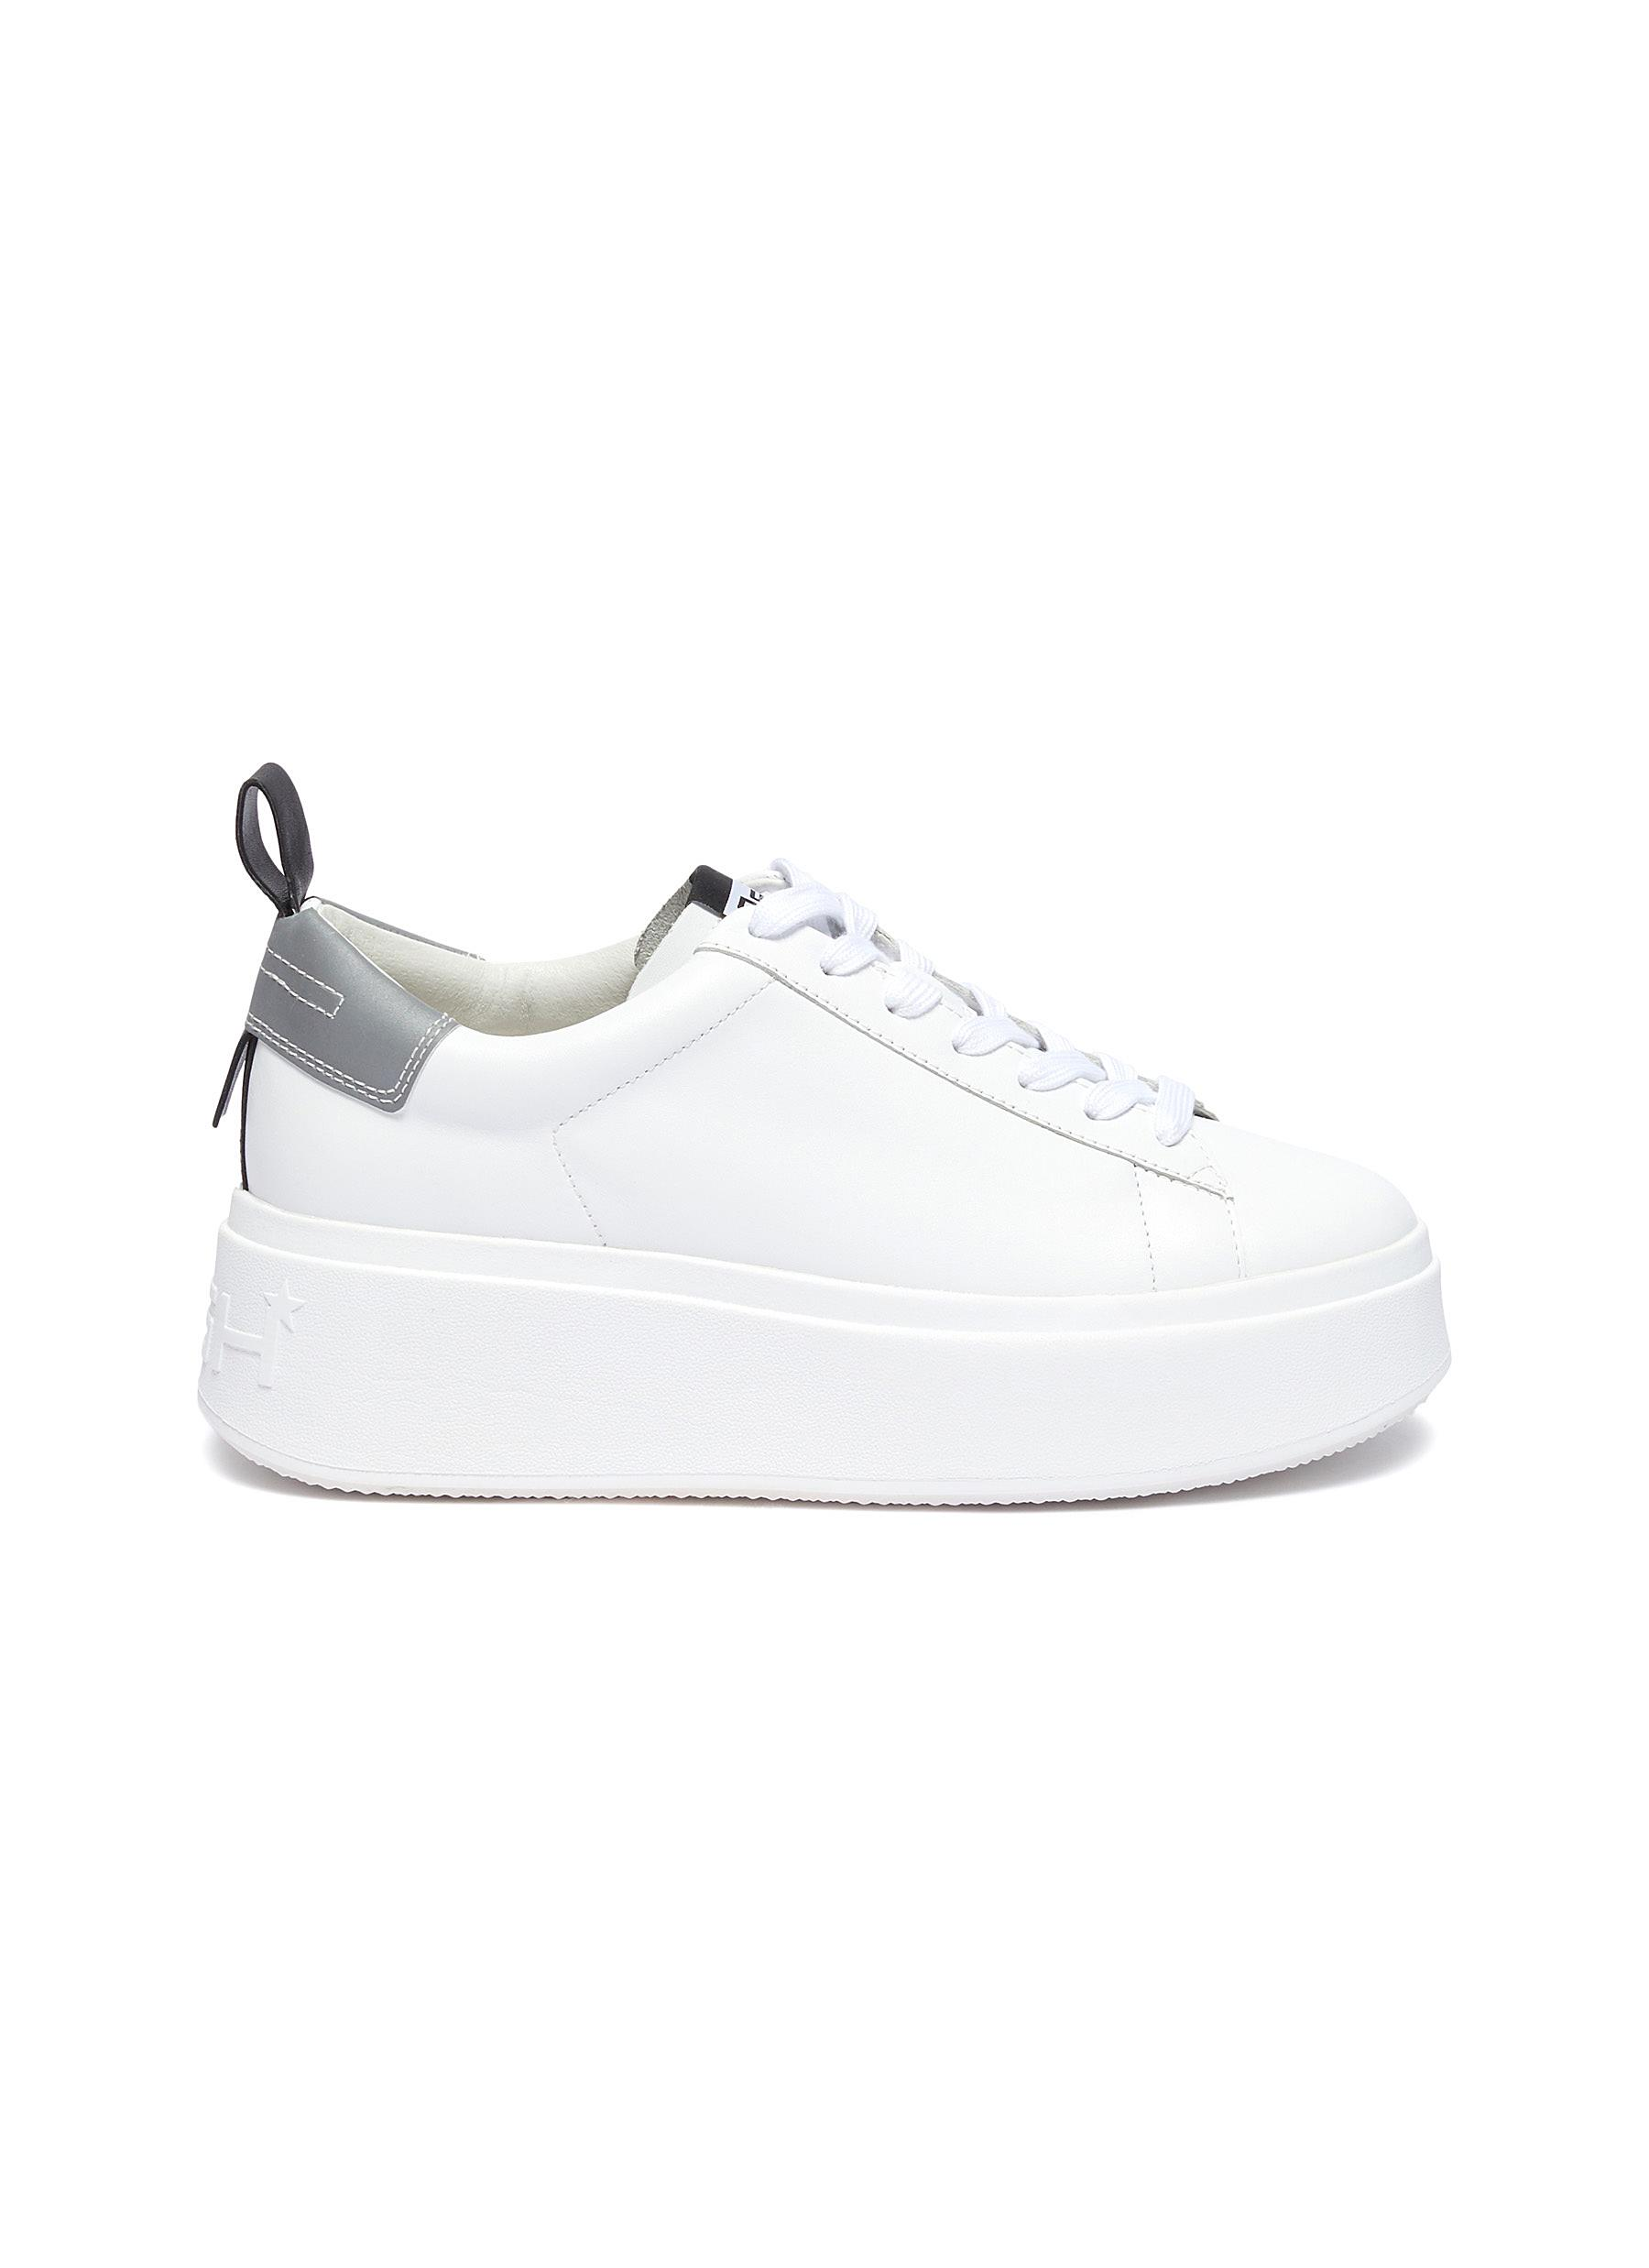 Moon platform leather sneakers by Ash